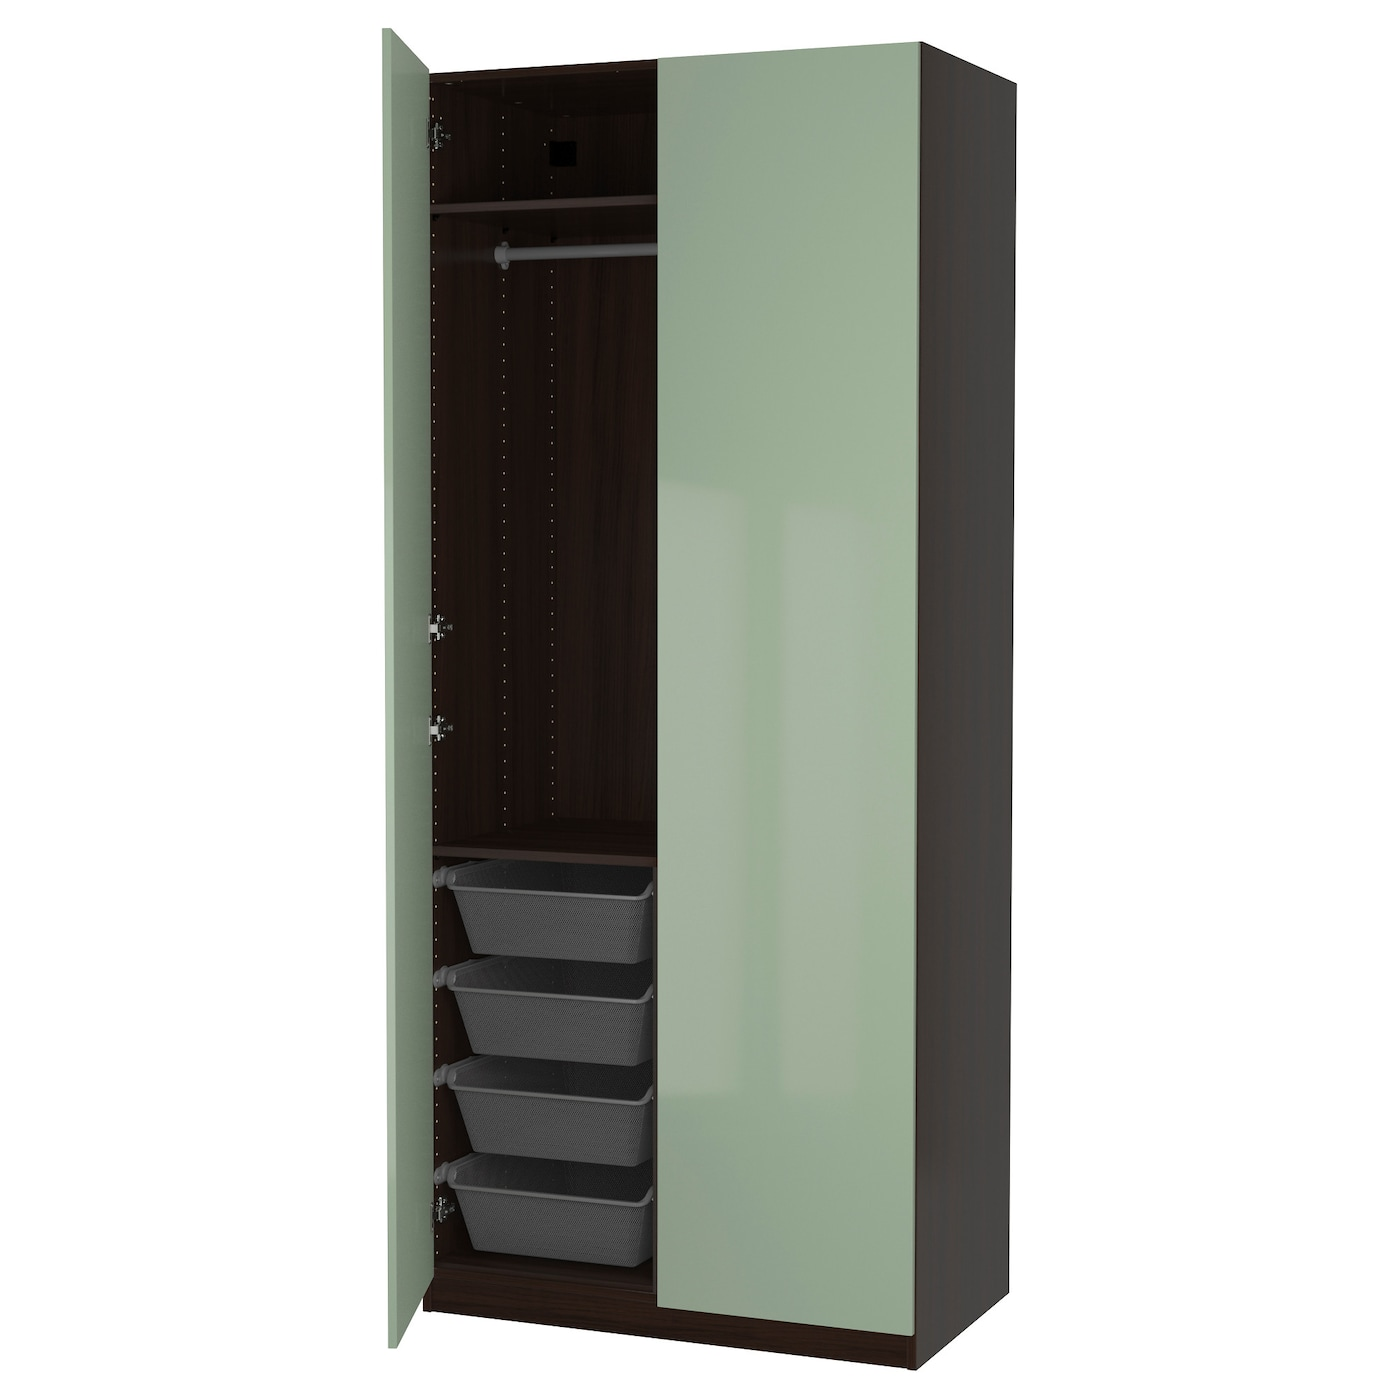 pax armoire penderie brun noir fardal brillant vert clair 100x60x236 cm ikea. Black Bedroom Furniture Sets. Home Design Ideas